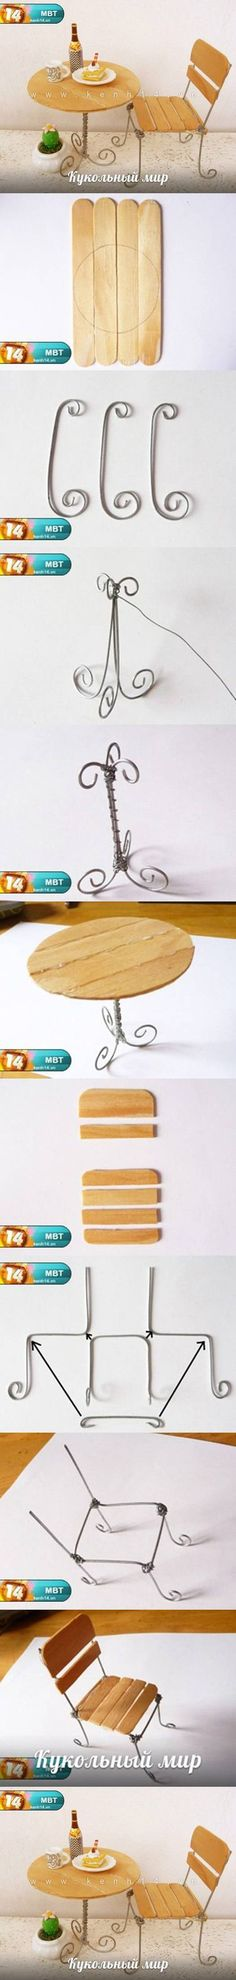 DIY Popsicle Stick Desk and Chair DIY Projects / UsefulDIY.com